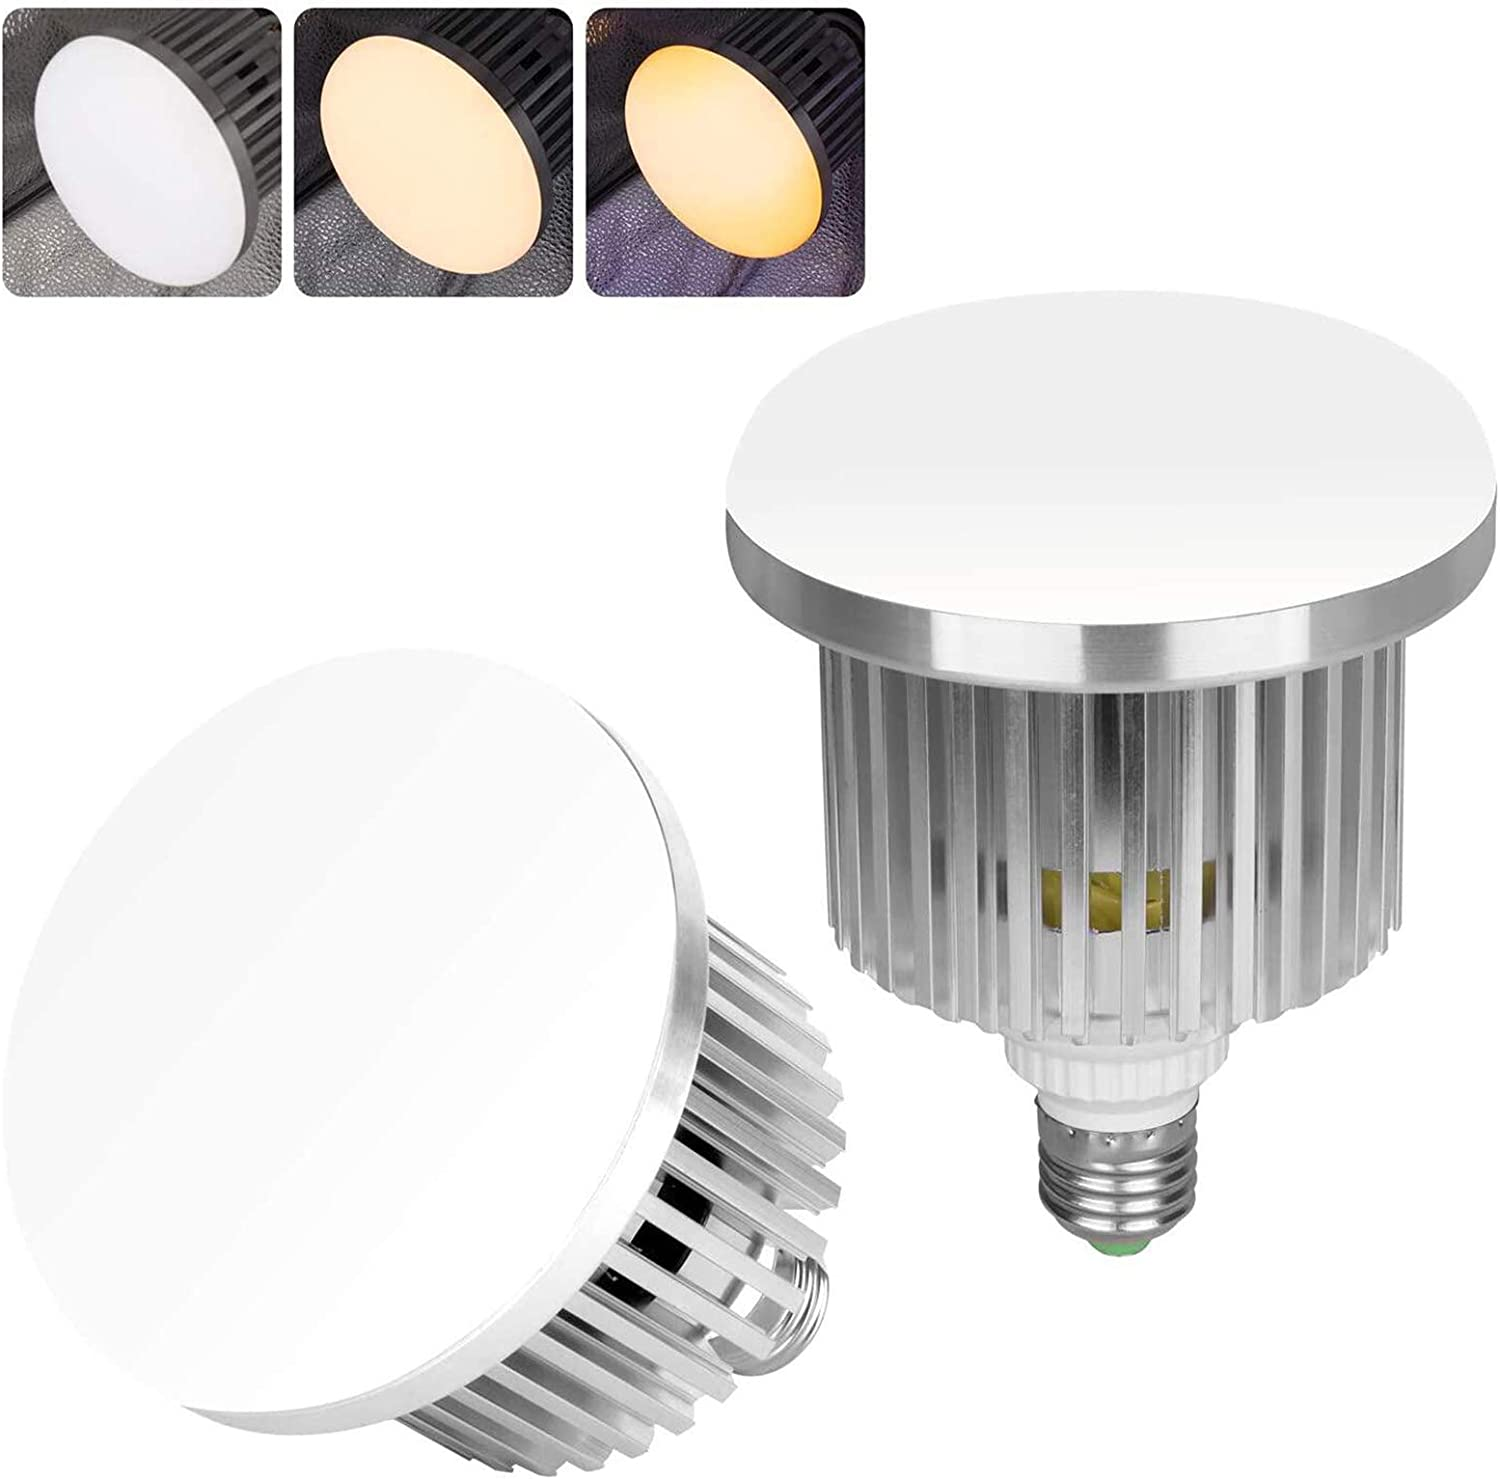 Emart Professional Photography Remote Control LED Light Bulb, Adjustable Color Temperature 3000k to 5500k Lighting Photo Studio Lamp with 3 Light Modes and 10 Brightness Levels - 2 pcs